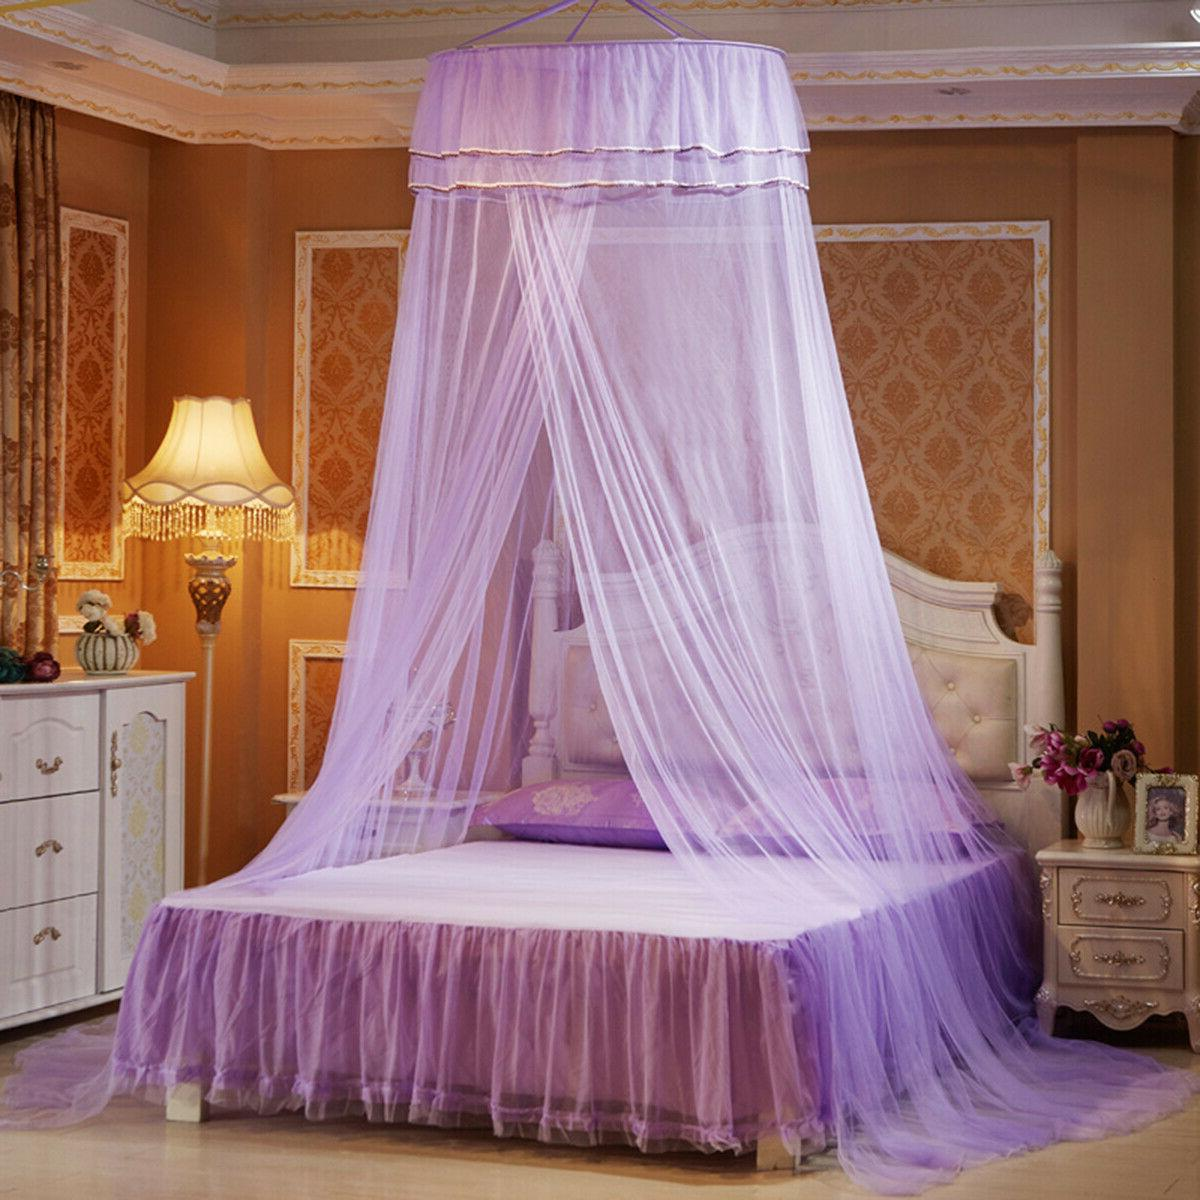 Solid Net Bed Queen Size Home Foldable Princess